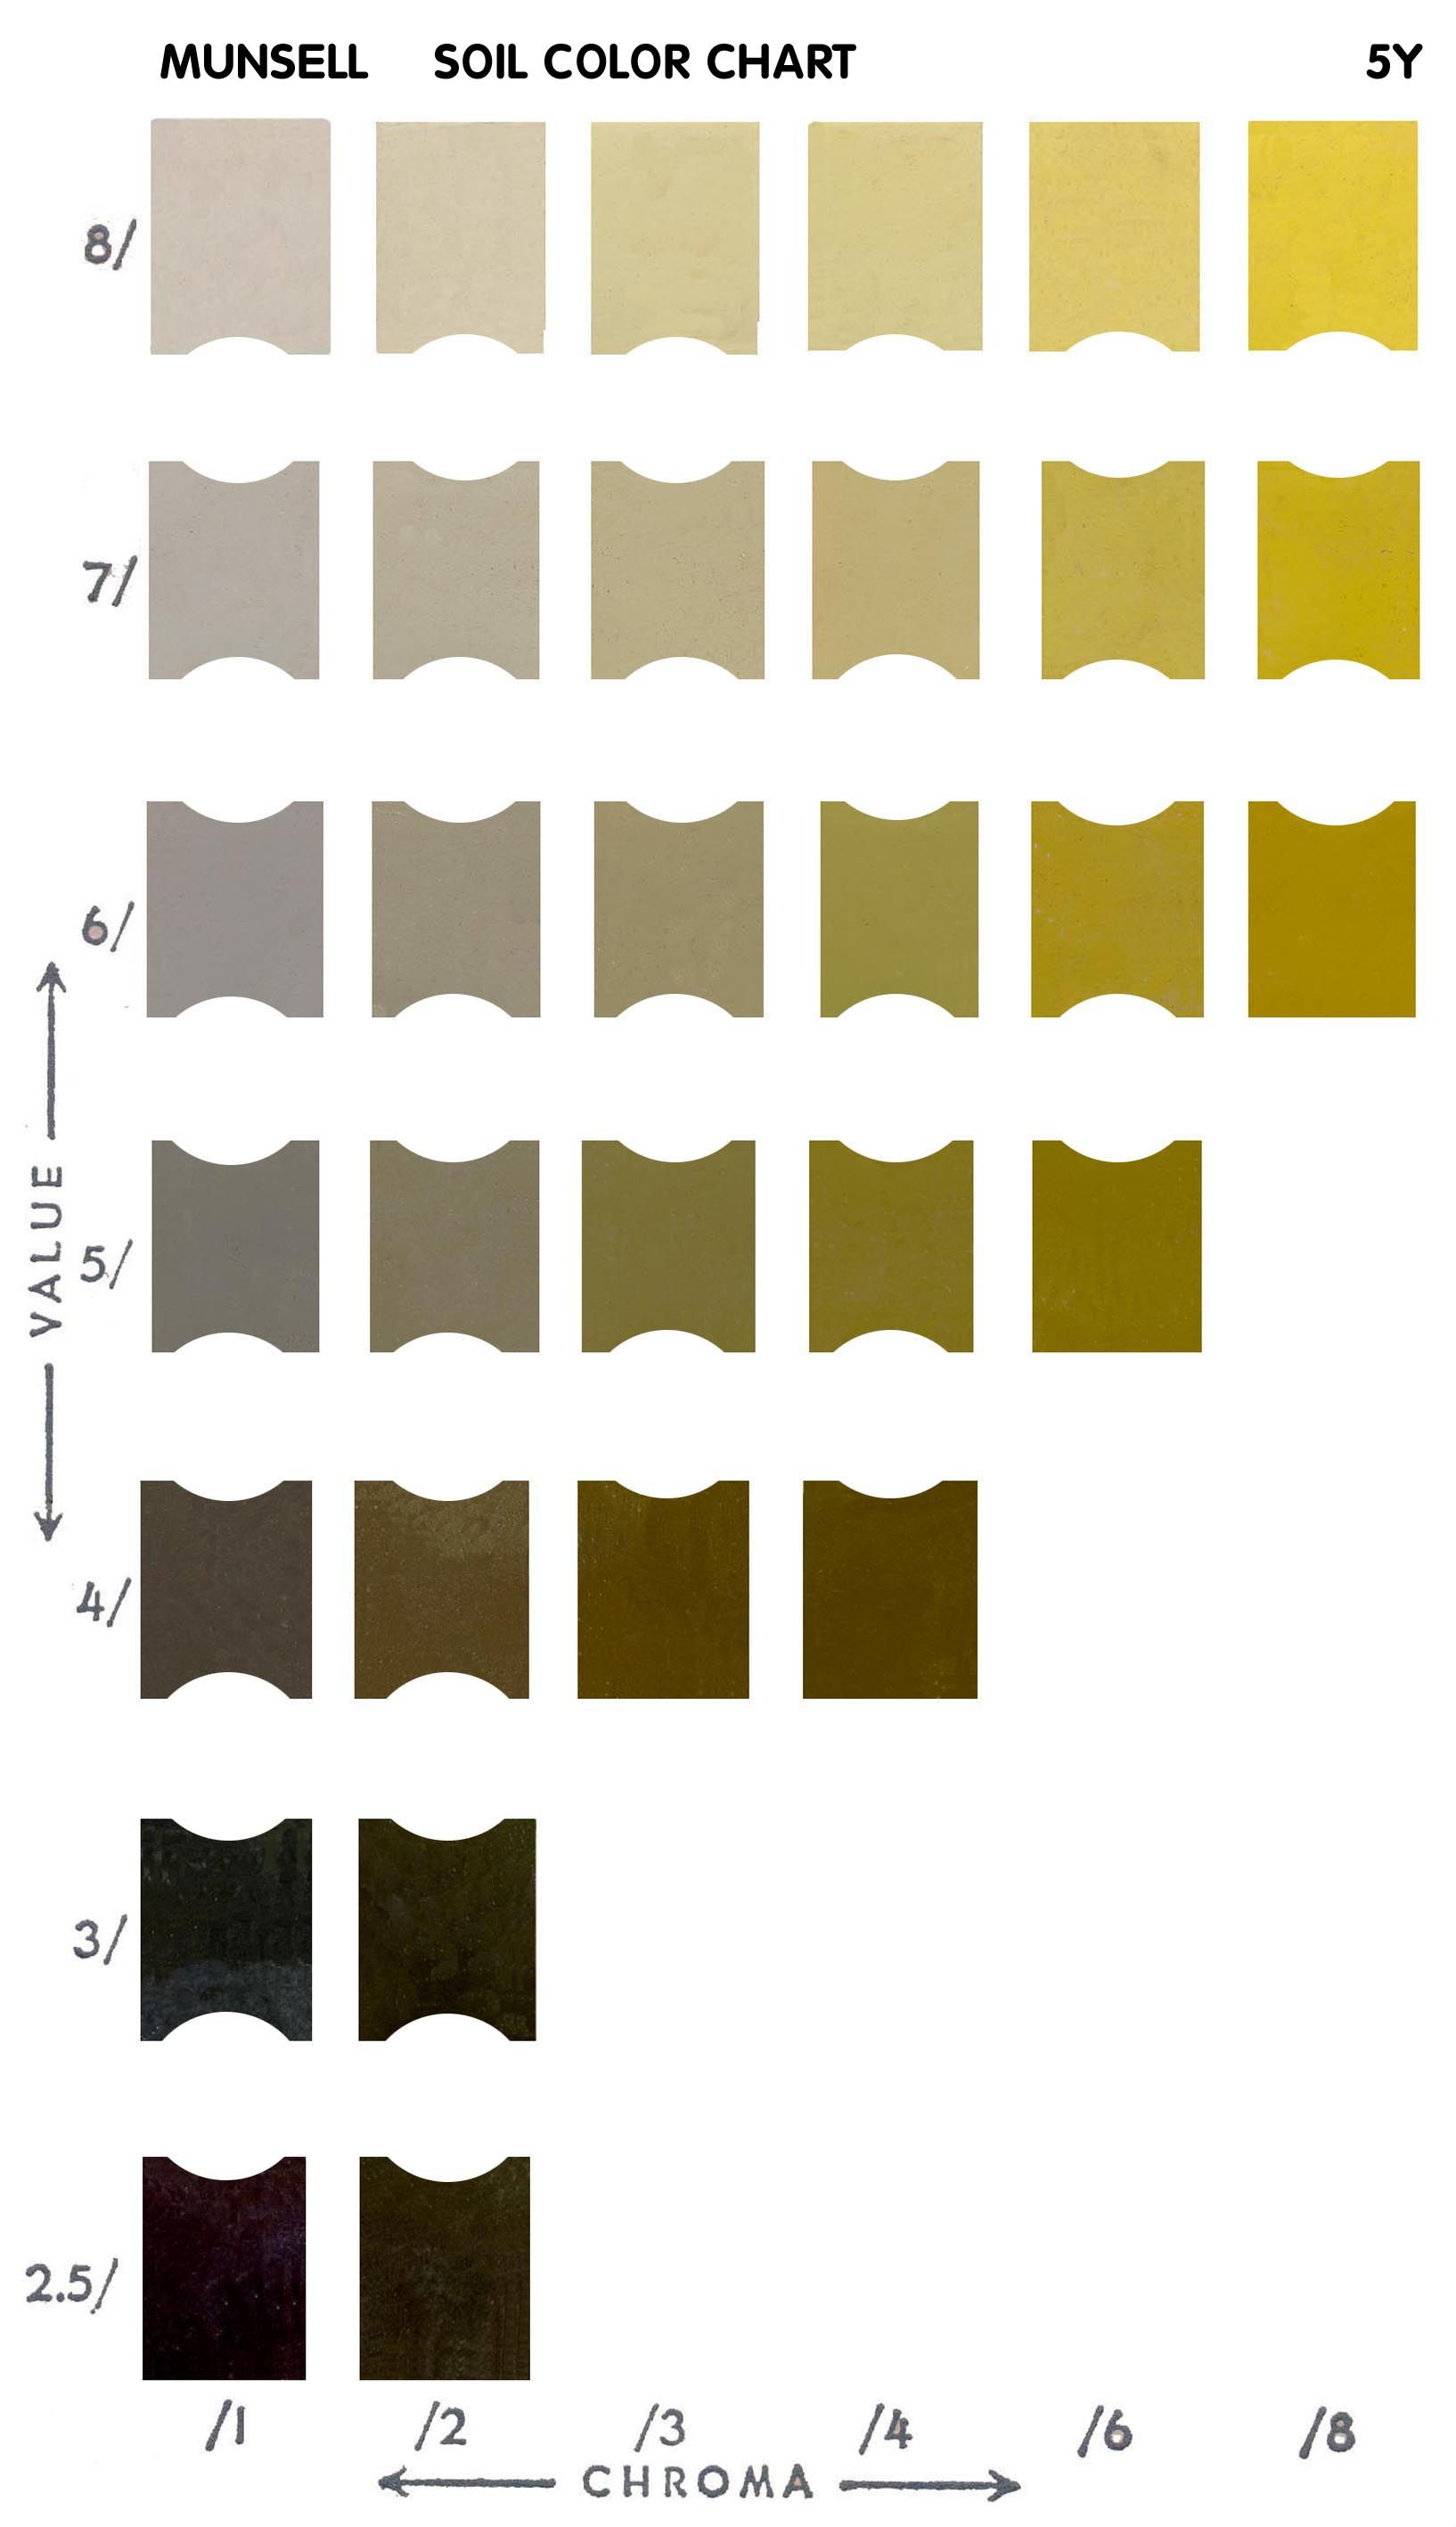 Munsell color chart online free  ng thang mau also munsel rh pinterest